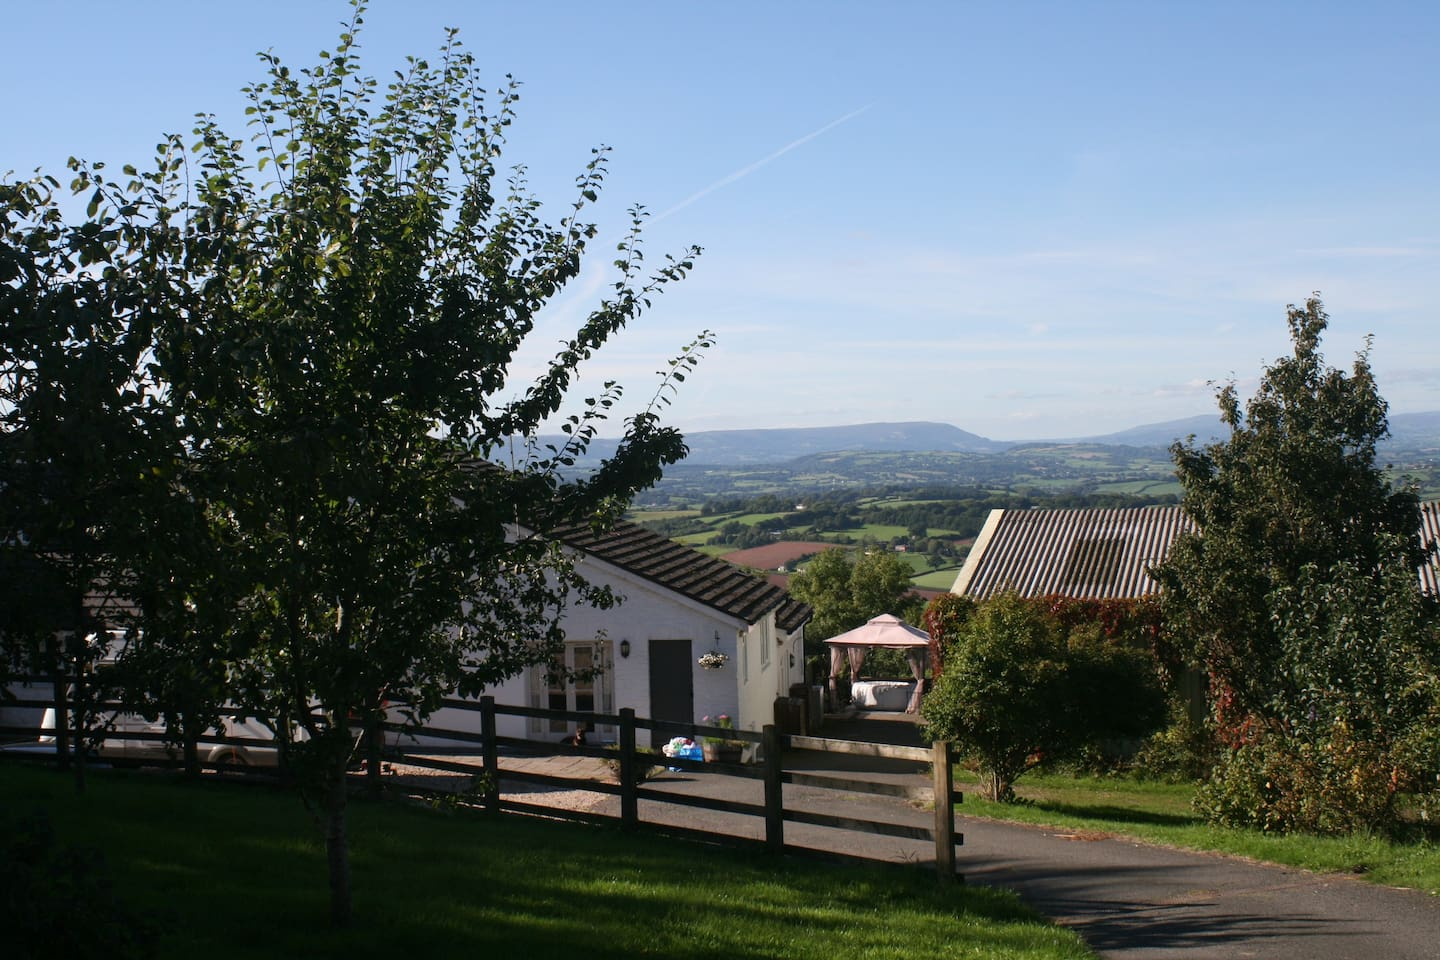 Dorlands House - sleeps 17 in 7 bedrooms with a hot tub overlooking the Usk Valley